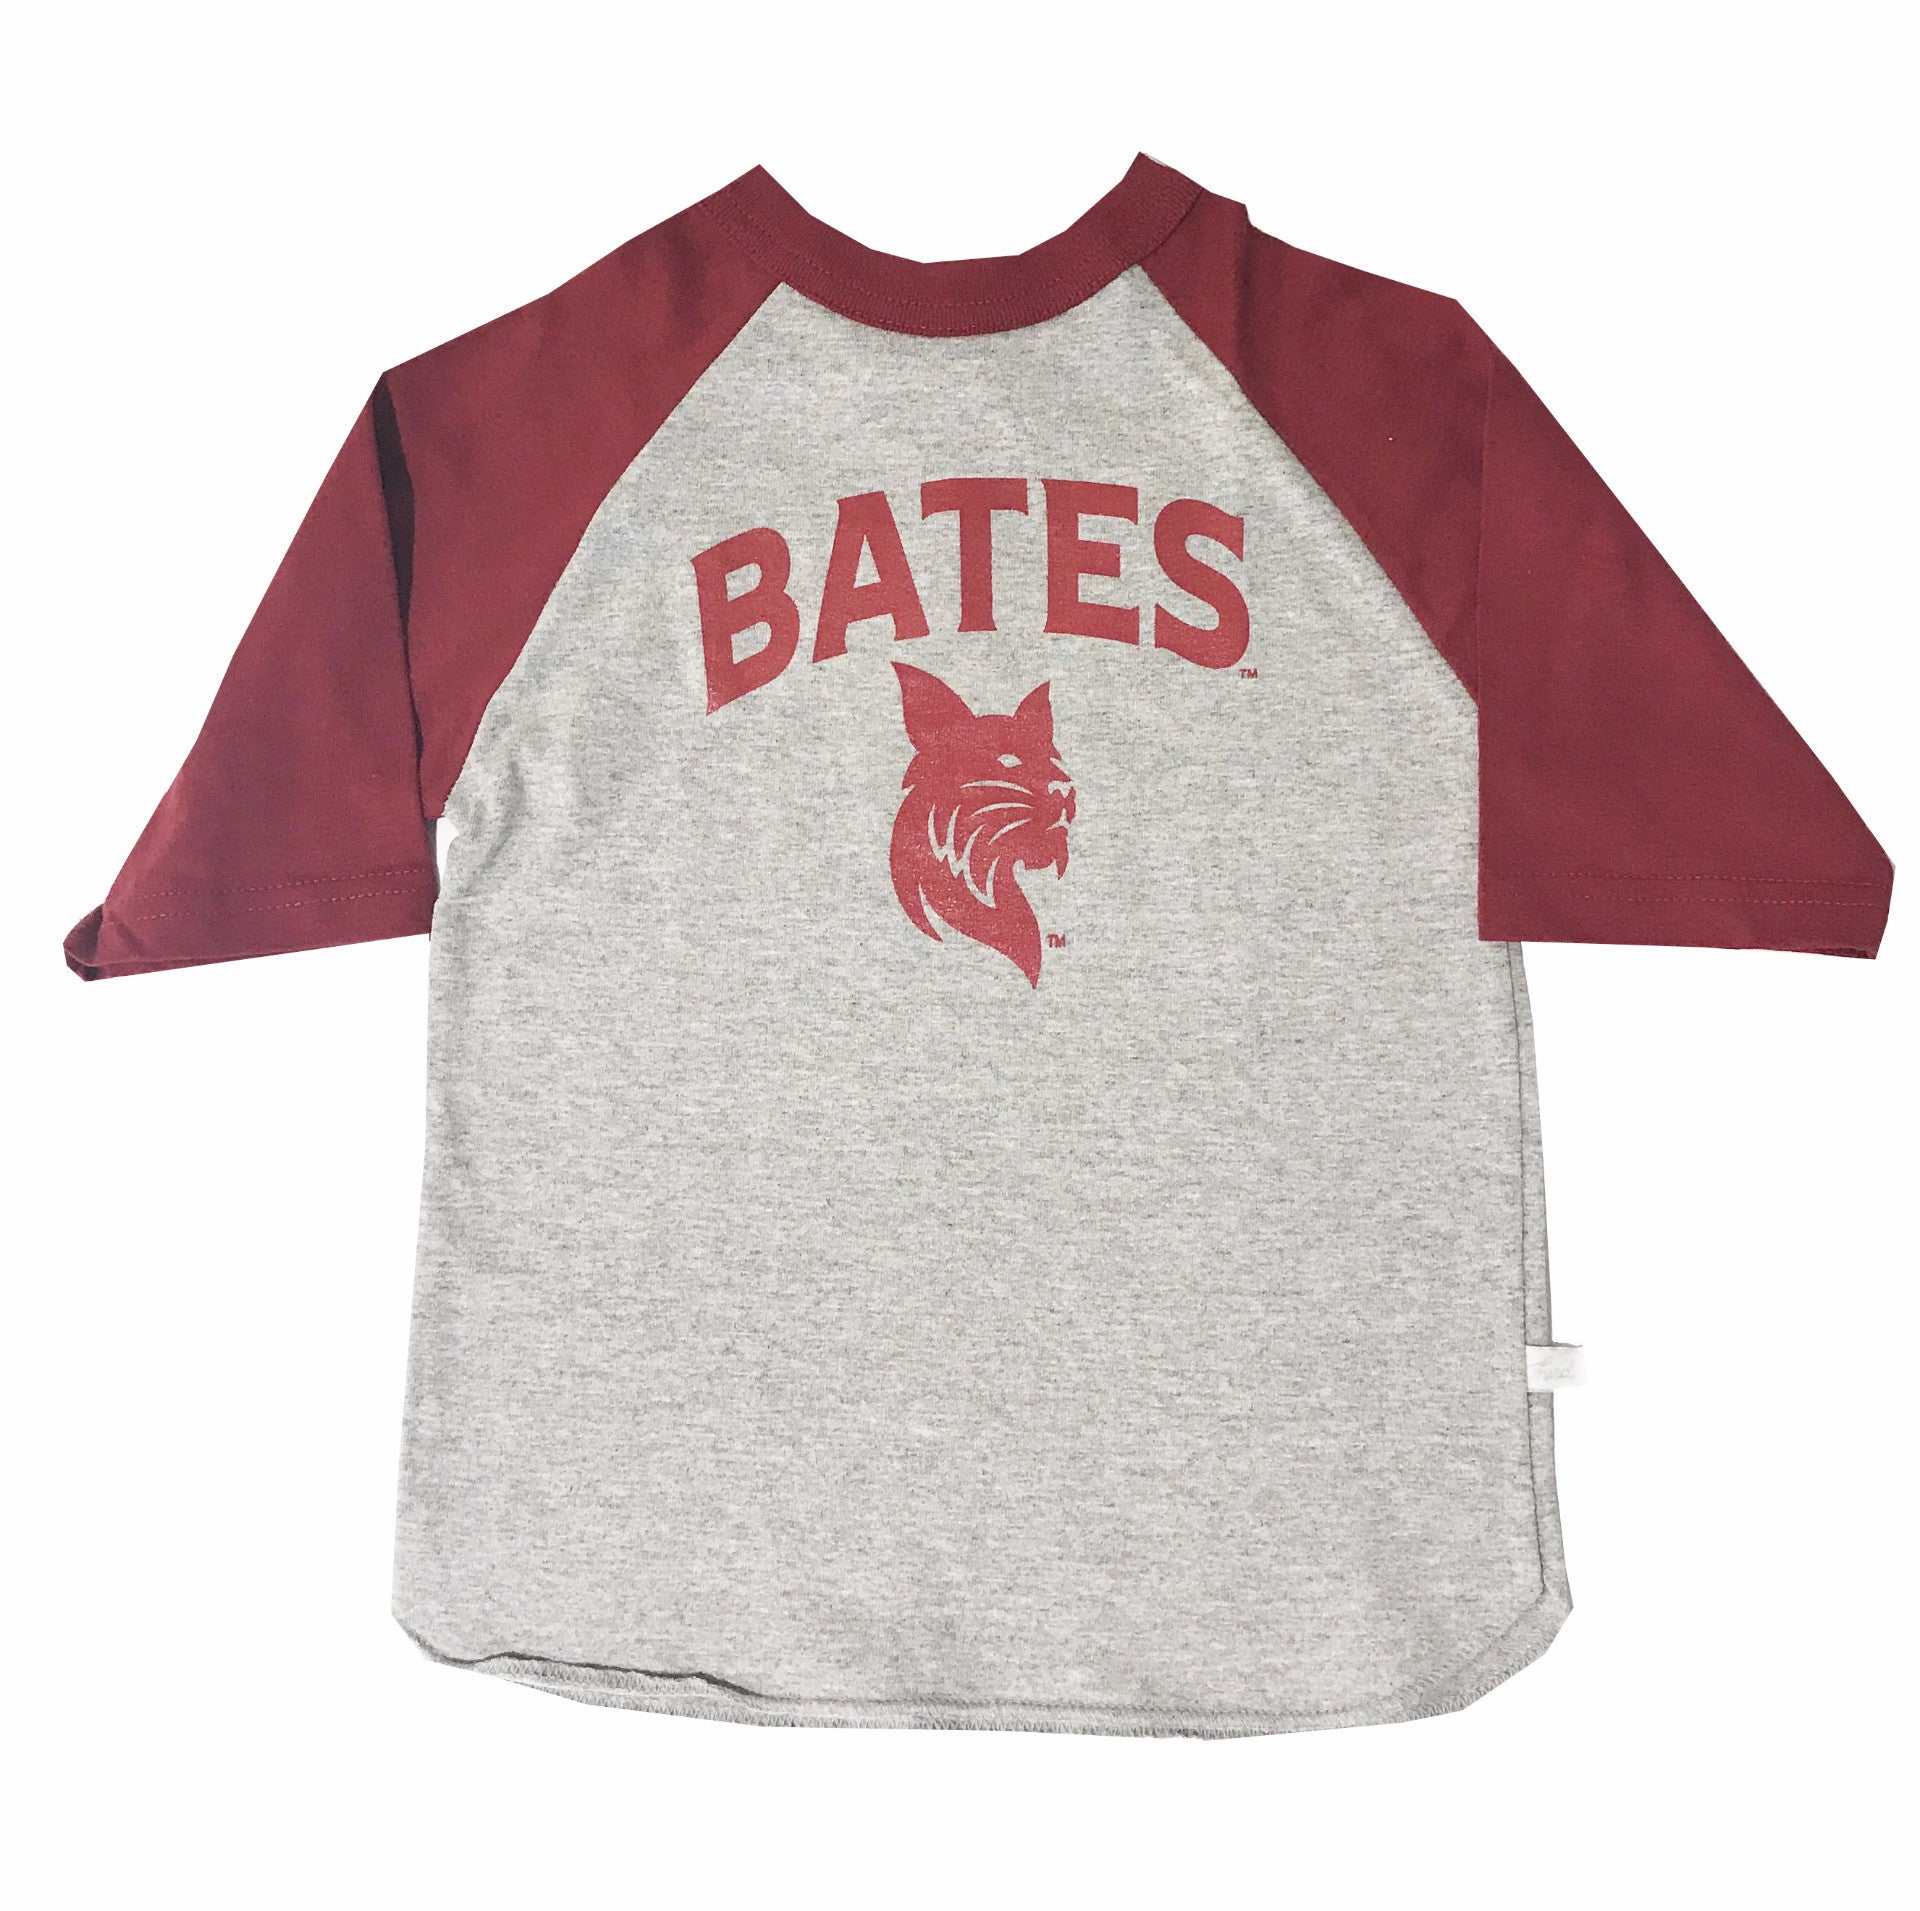 Baseball Shirt for Kids - Kids & Babies, Kids Clothing